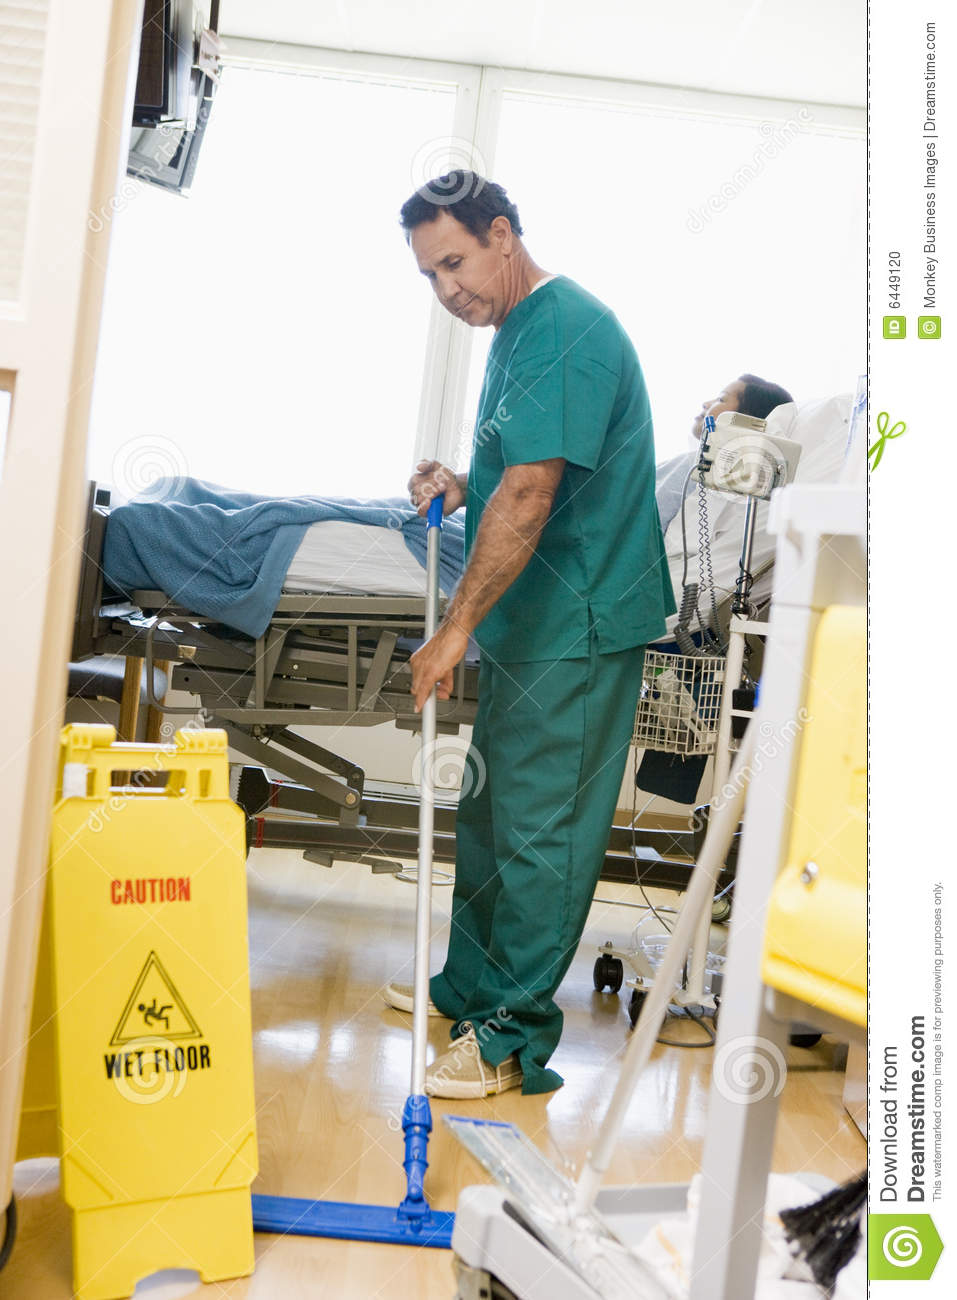 An Orderly Mopping The Floor In A Hospital Ward Stock